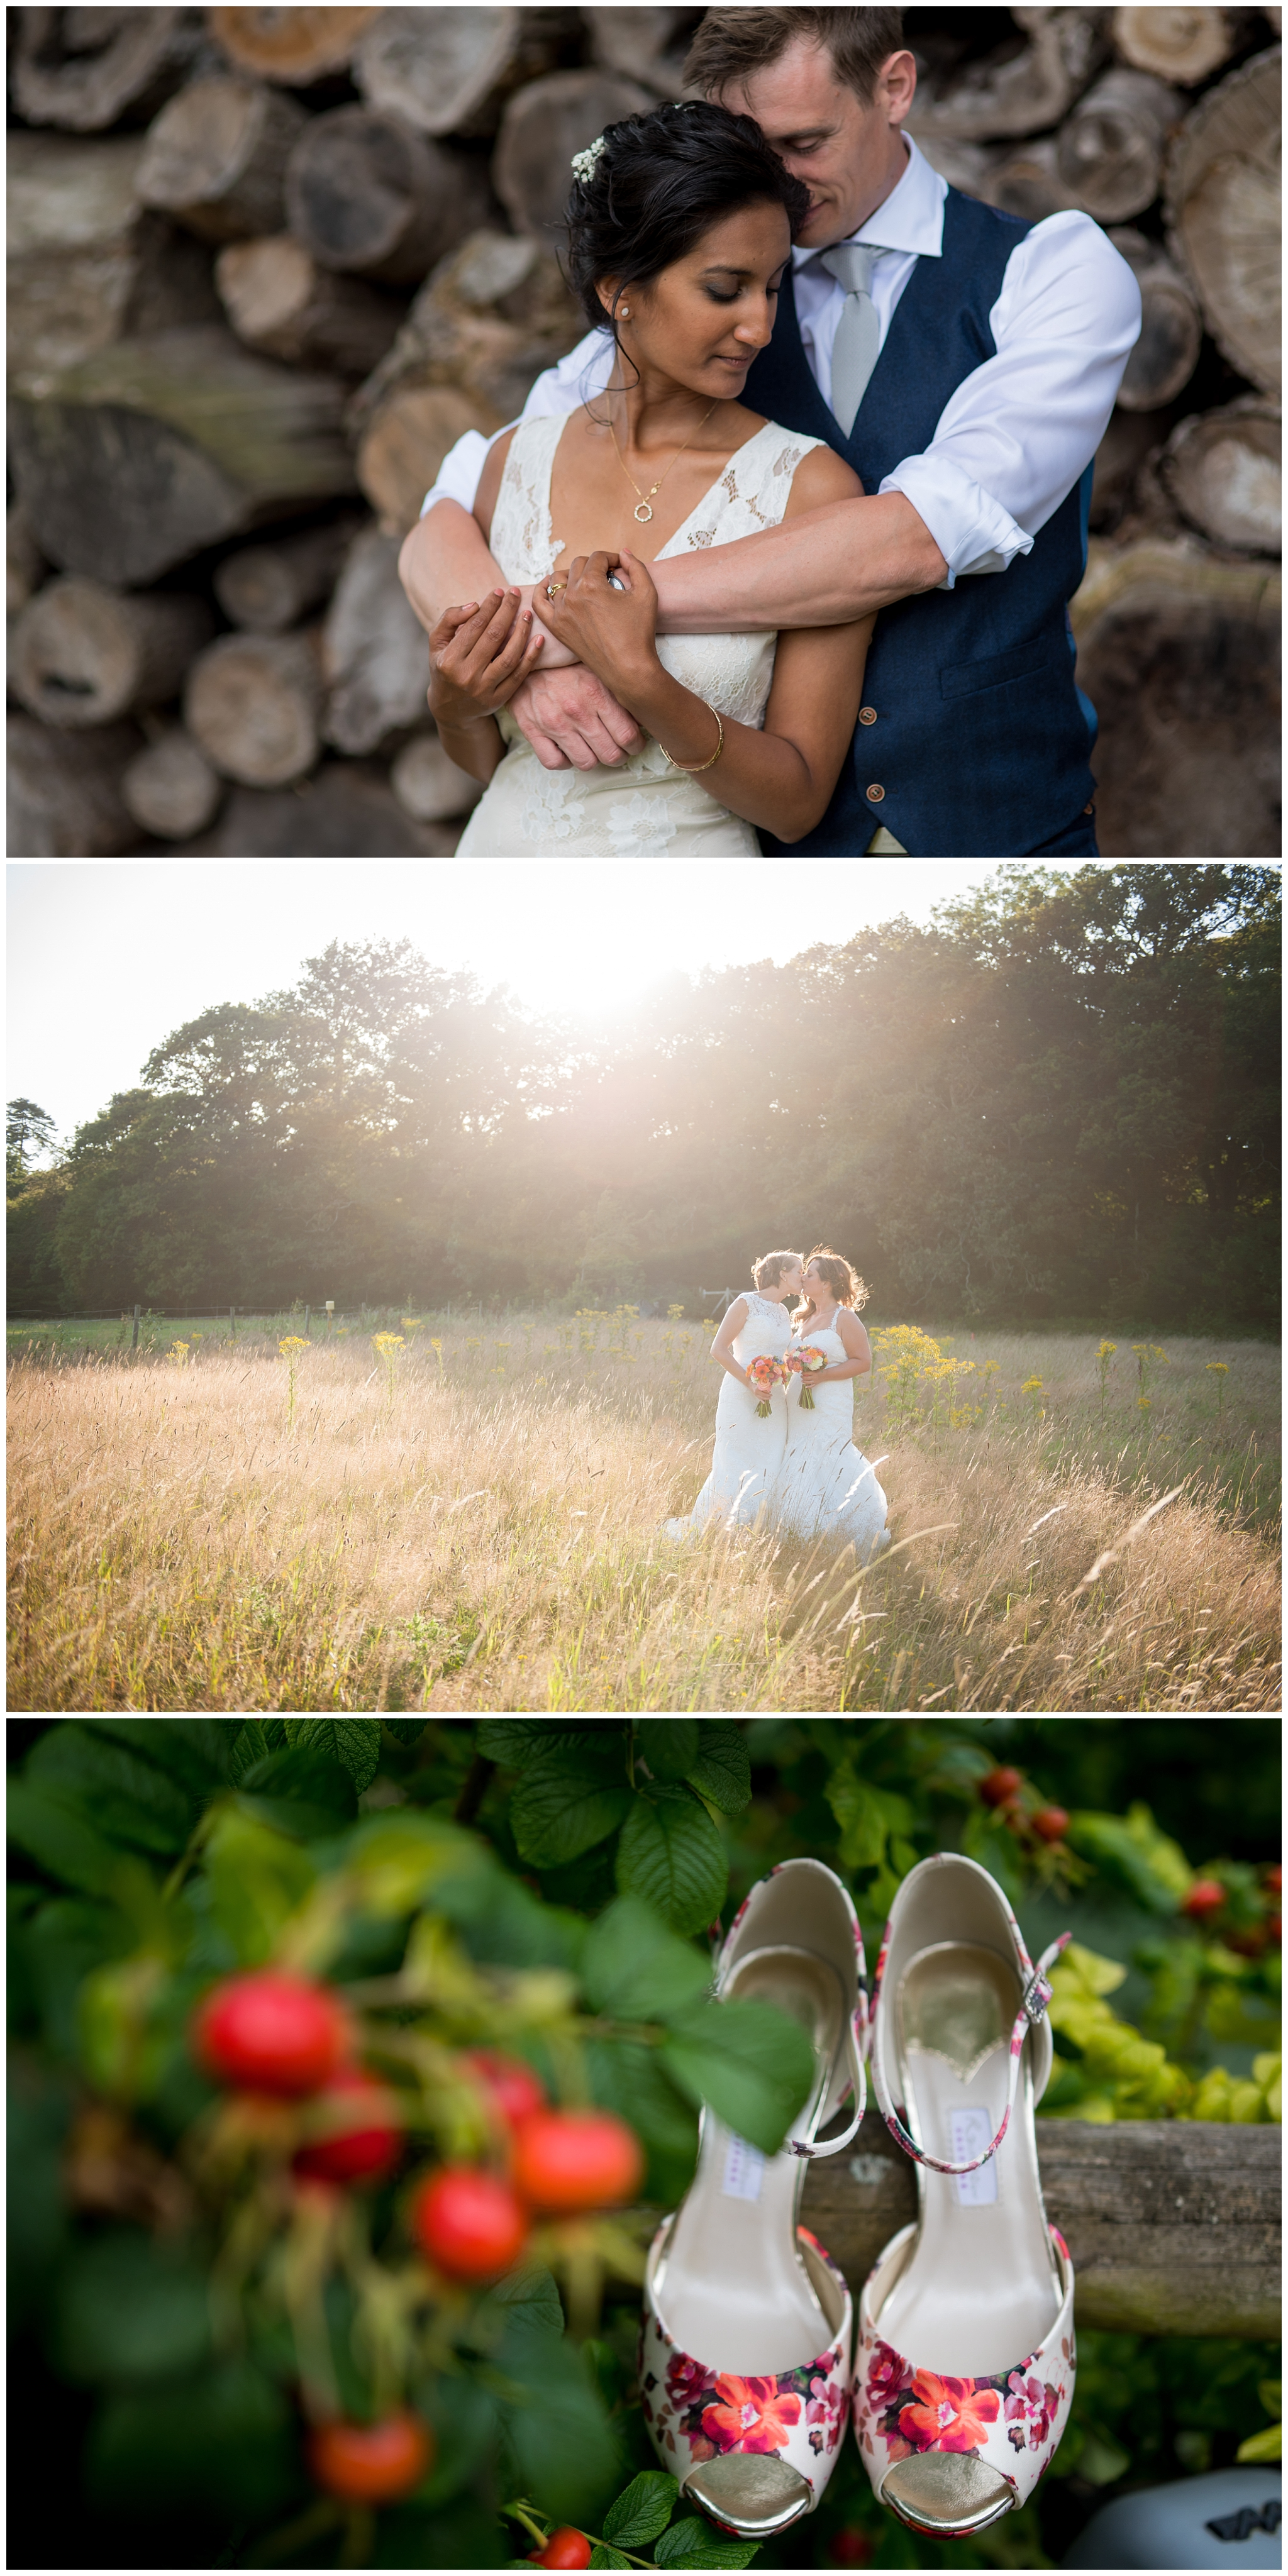 Wedding photography in Southampton